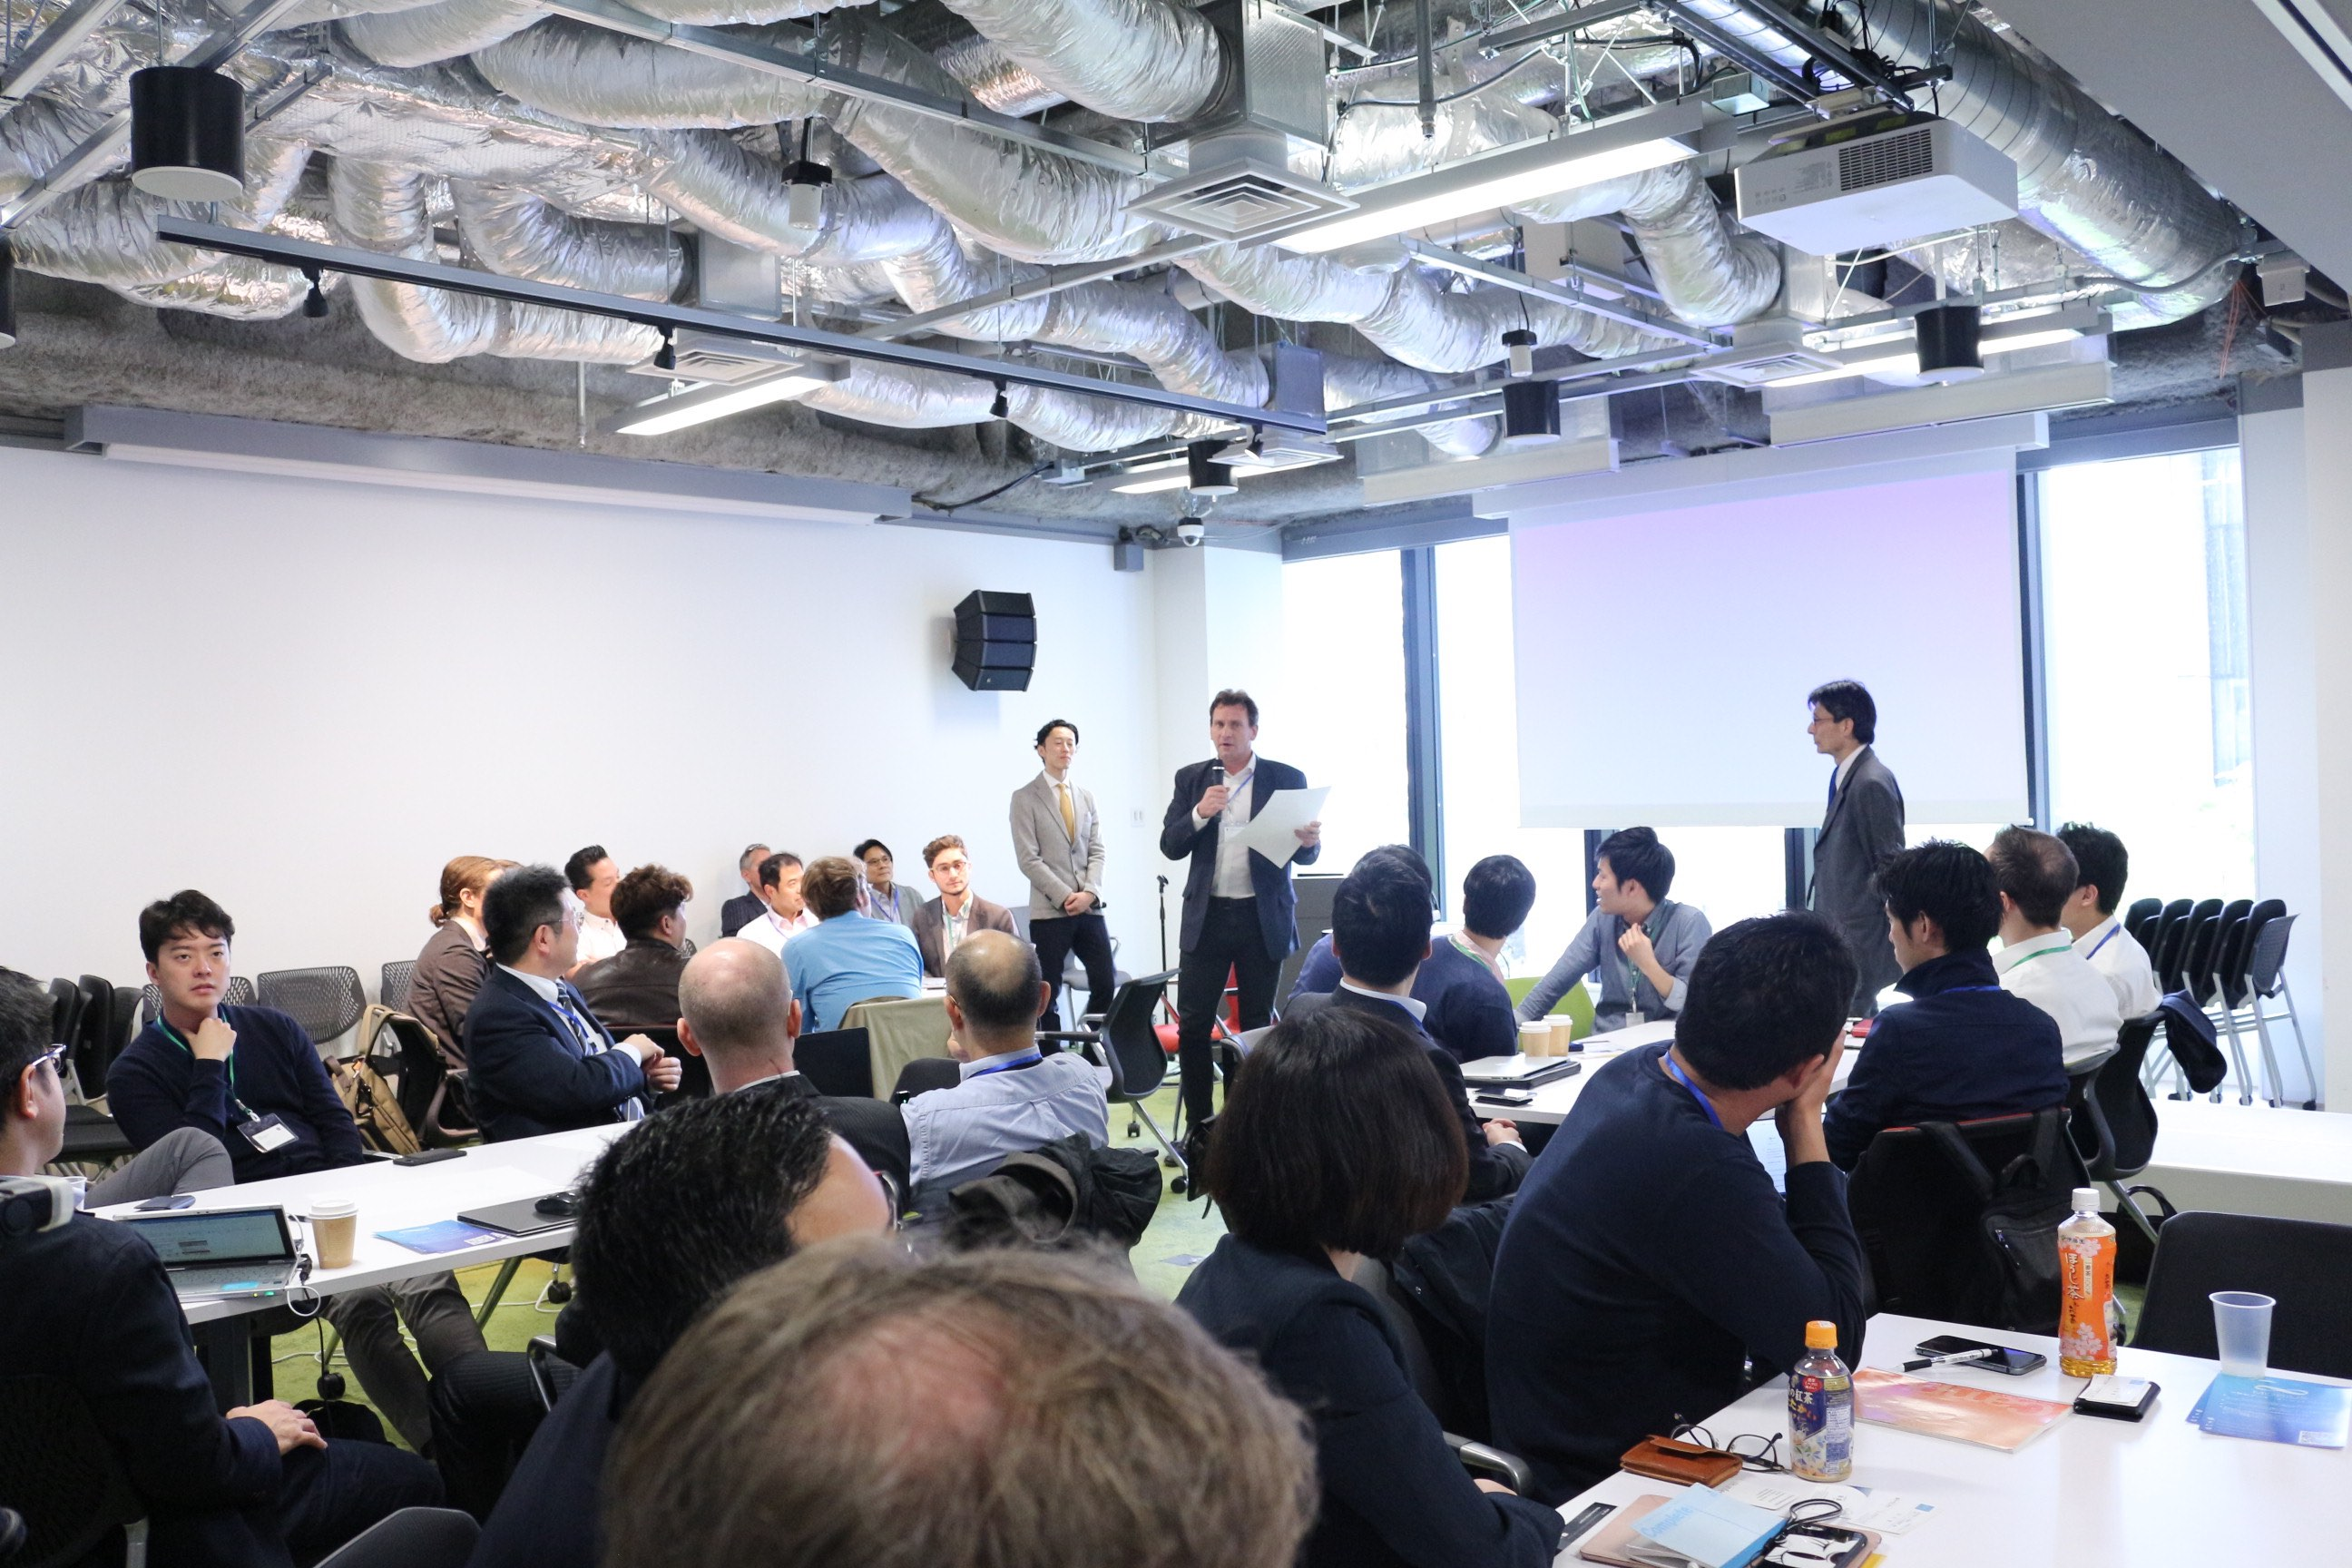 """Japan Tech Leaders Summit focused on """"Industry 5.0"""": technological and business shifts that innovators should be mindful of in the years ahead."""